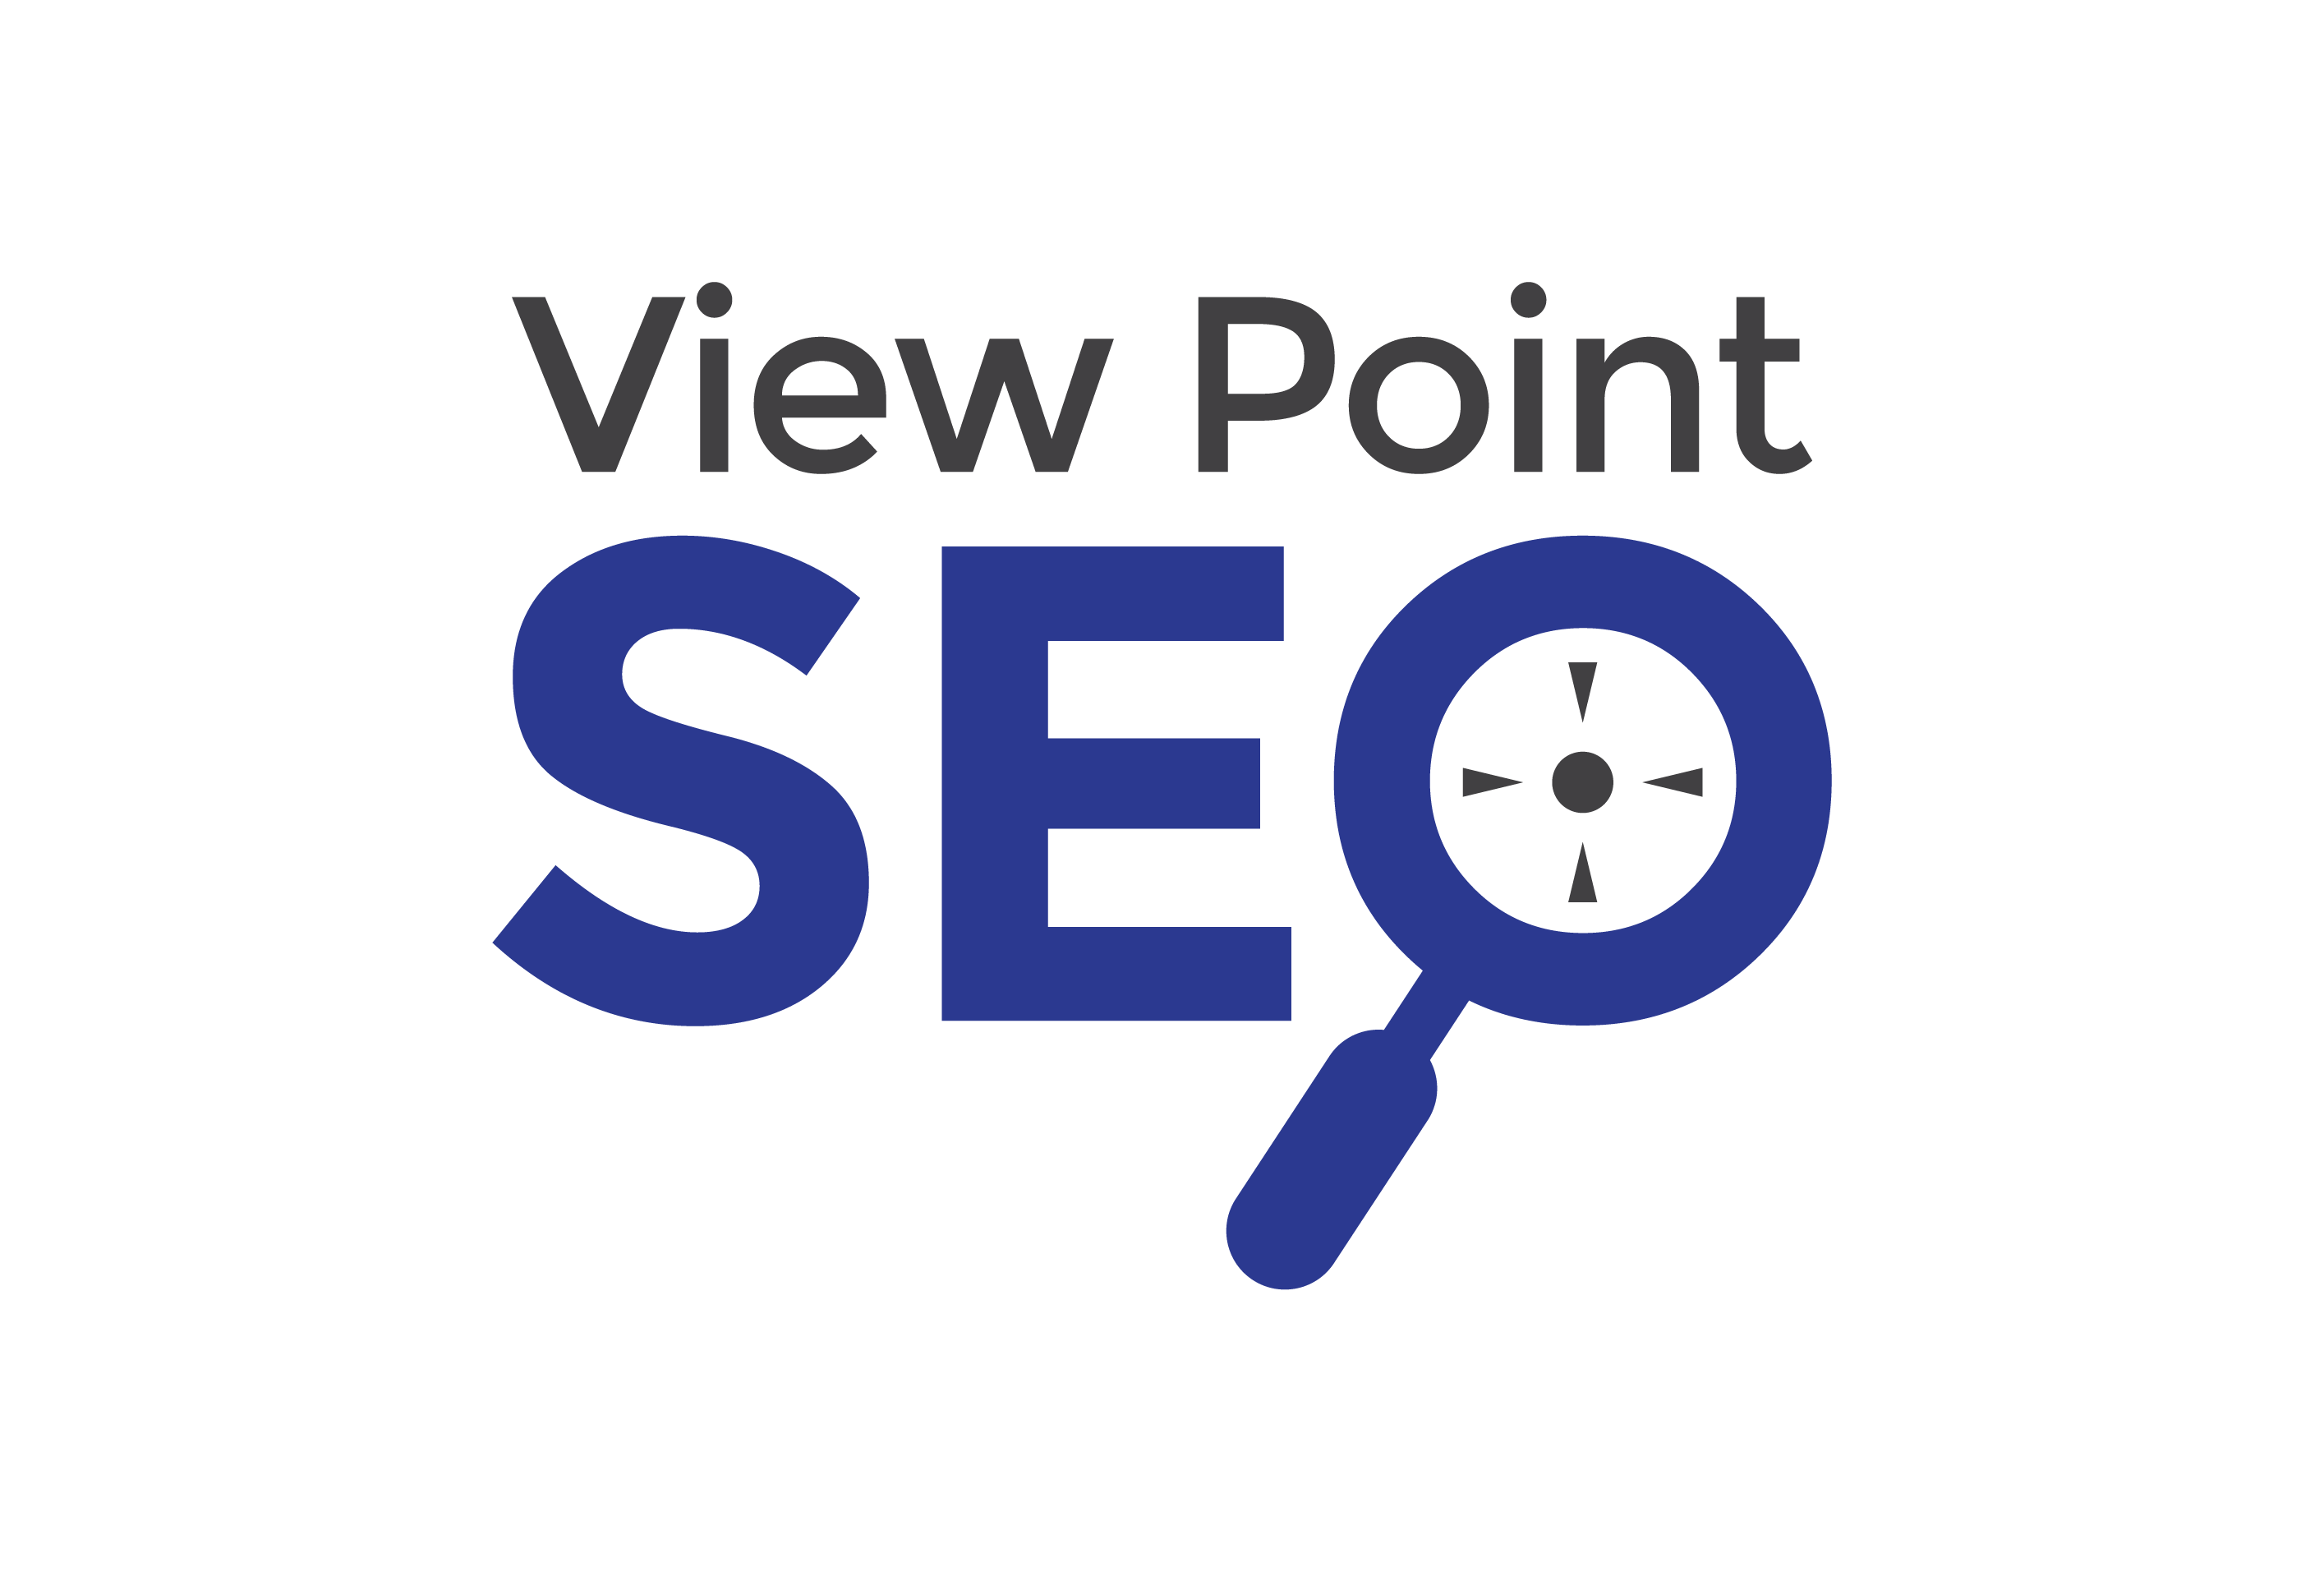 Viewing png files. File view point seo